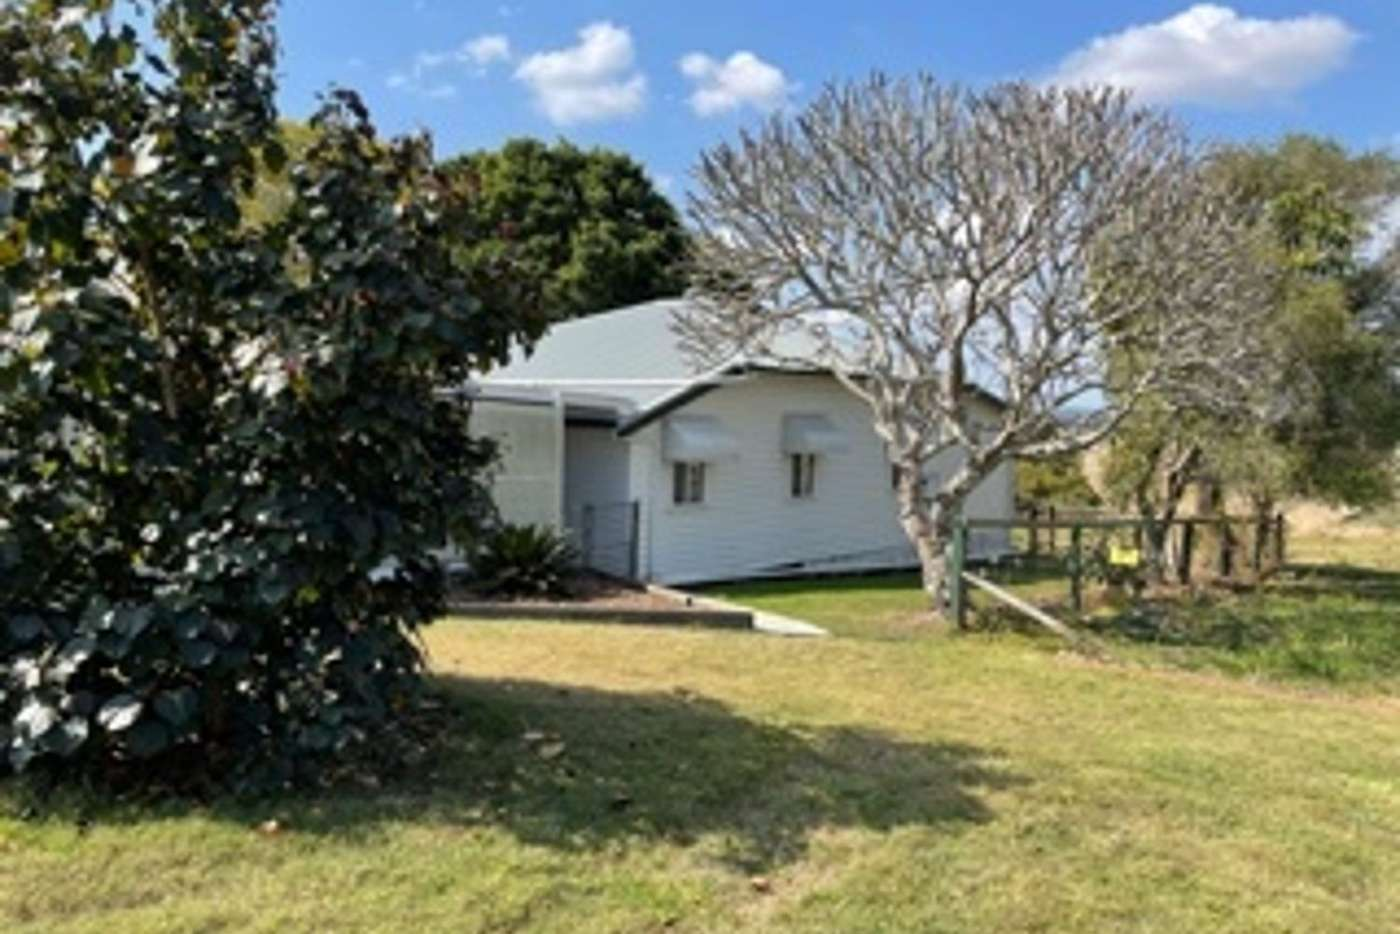 Main view of Homely house listing, 896 Rogerson Road, Mckees Hill NSW 2480